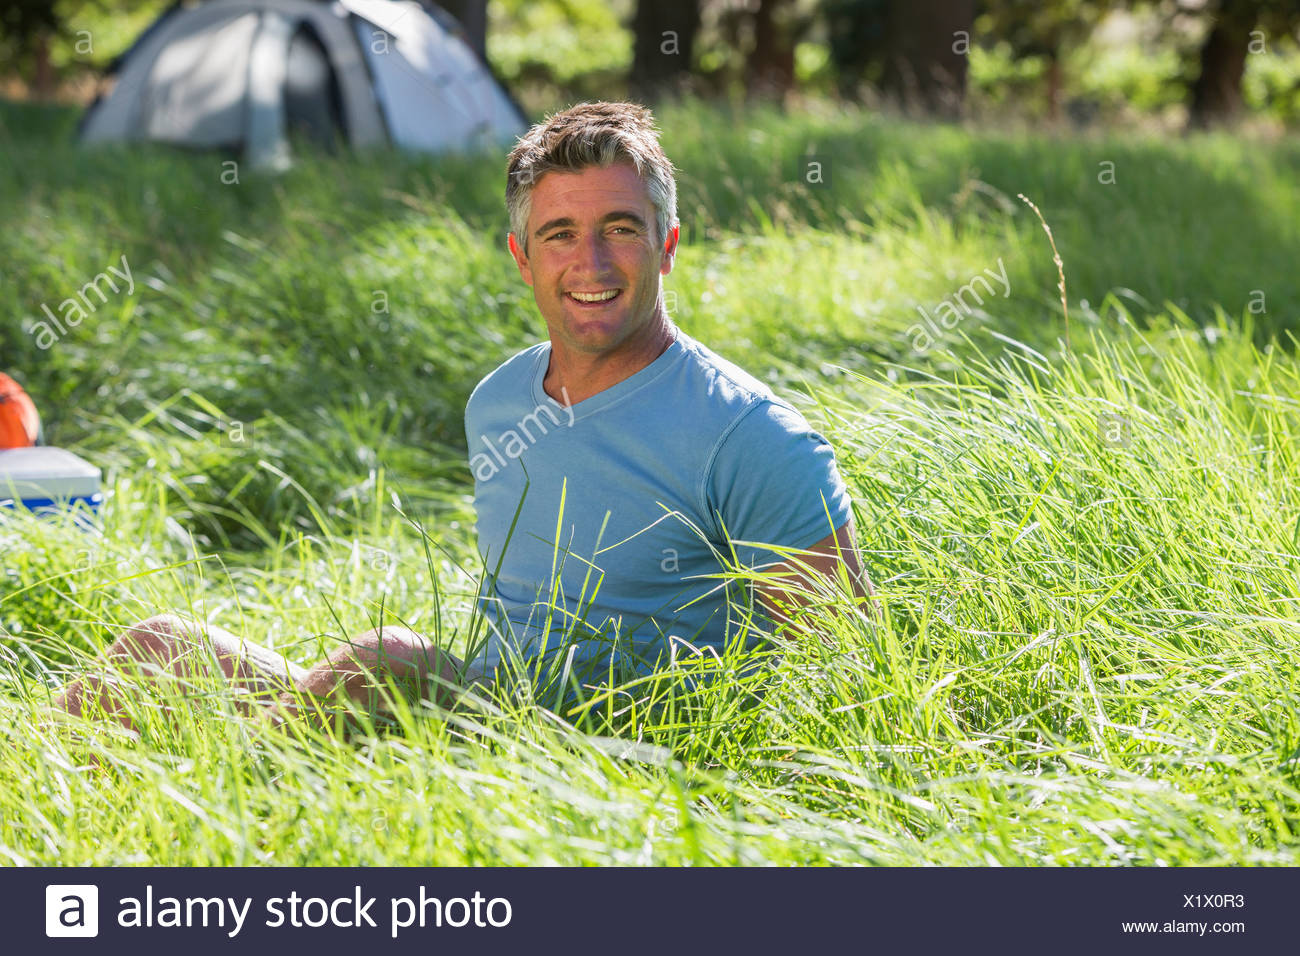 Man Relaxing On Camping Trip In Countryside - Stock Image